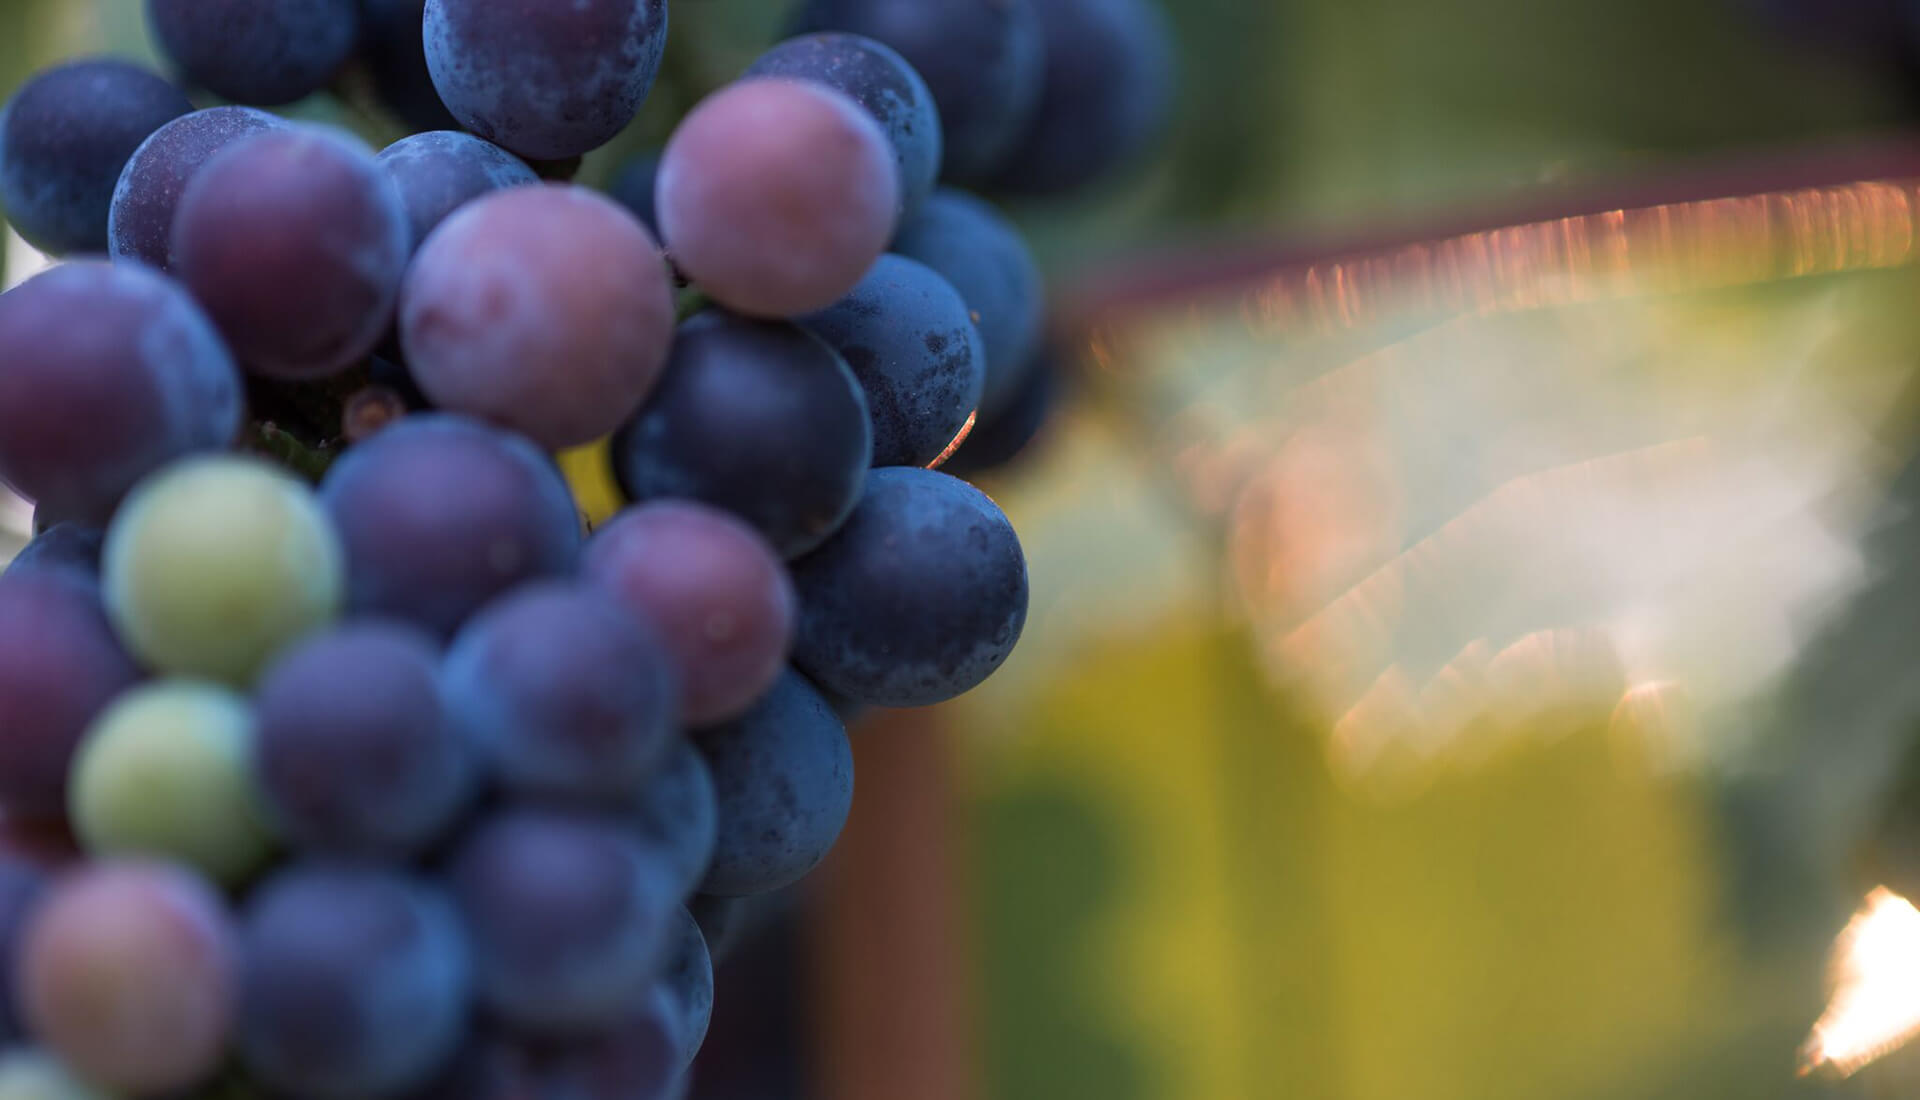 Vokel Cellars Grapes Up Close